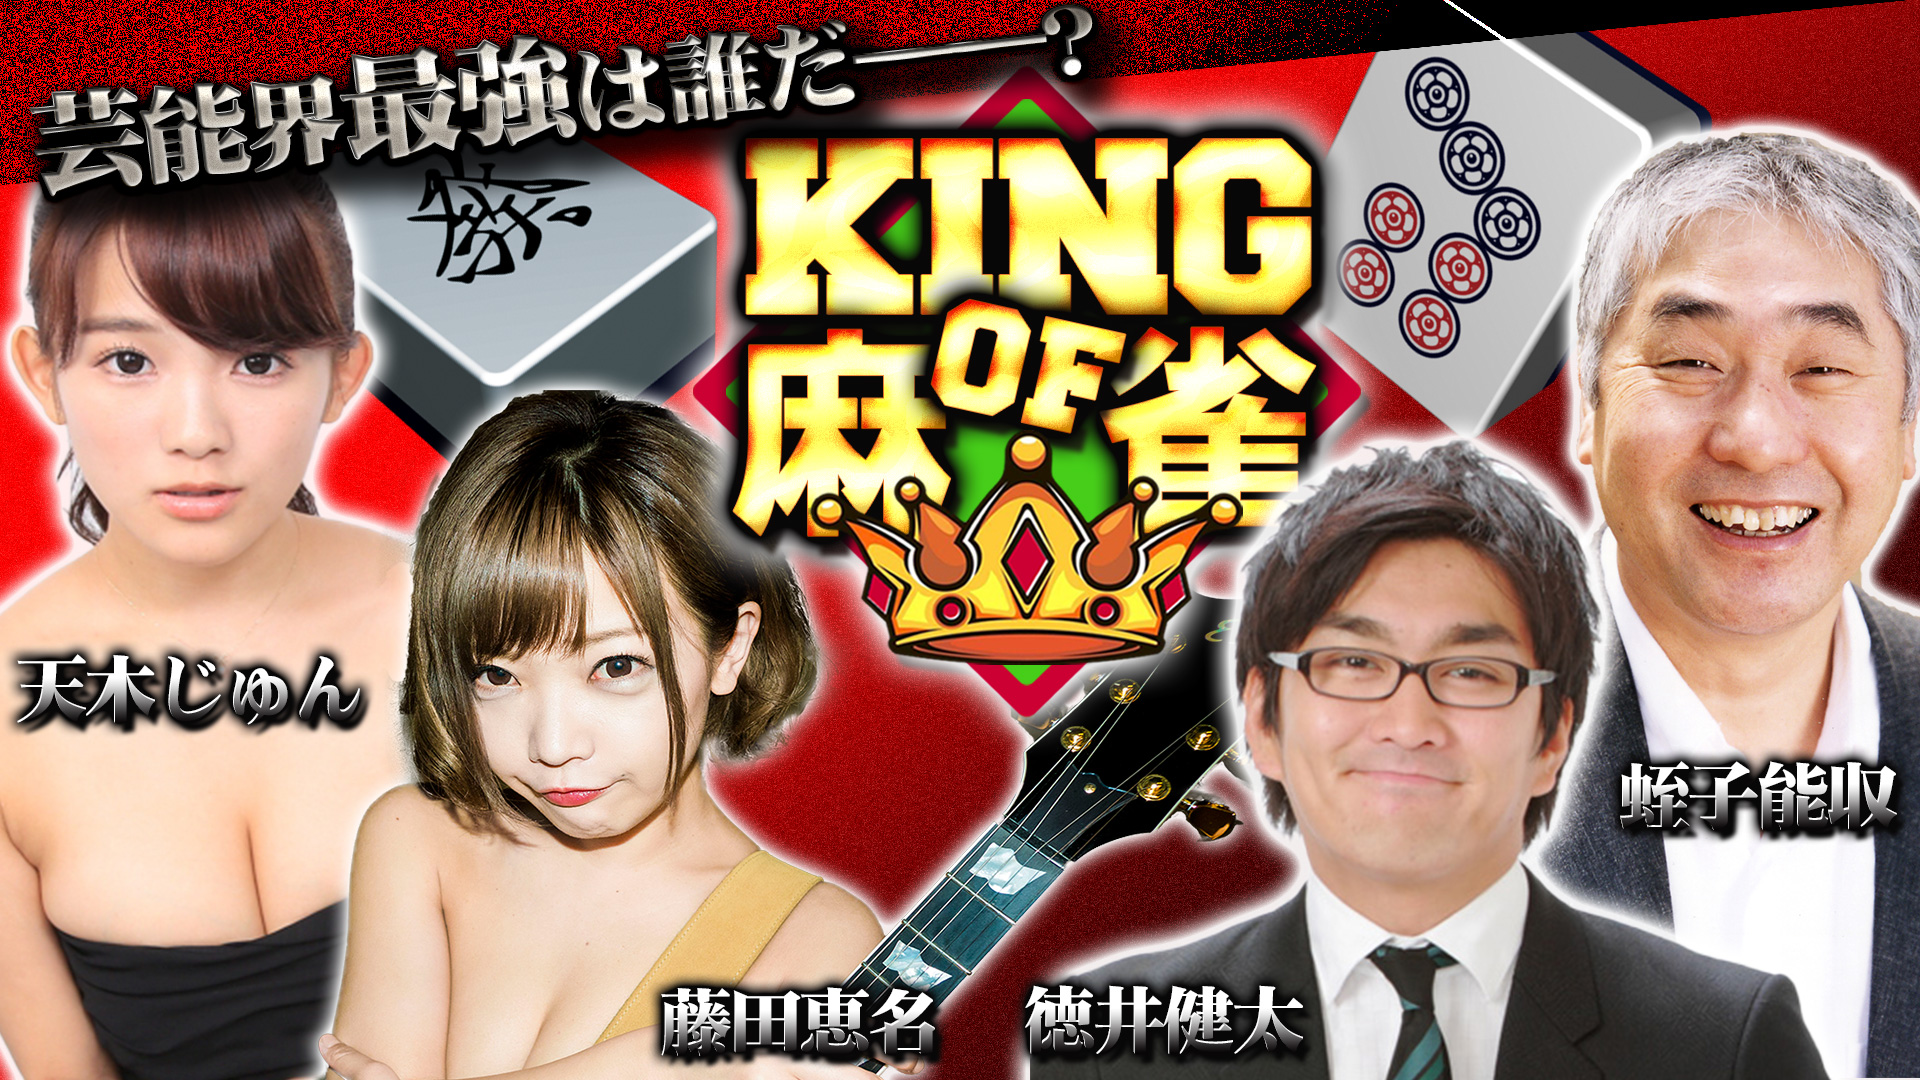 dTVチャンネル杯KING of 麻雀